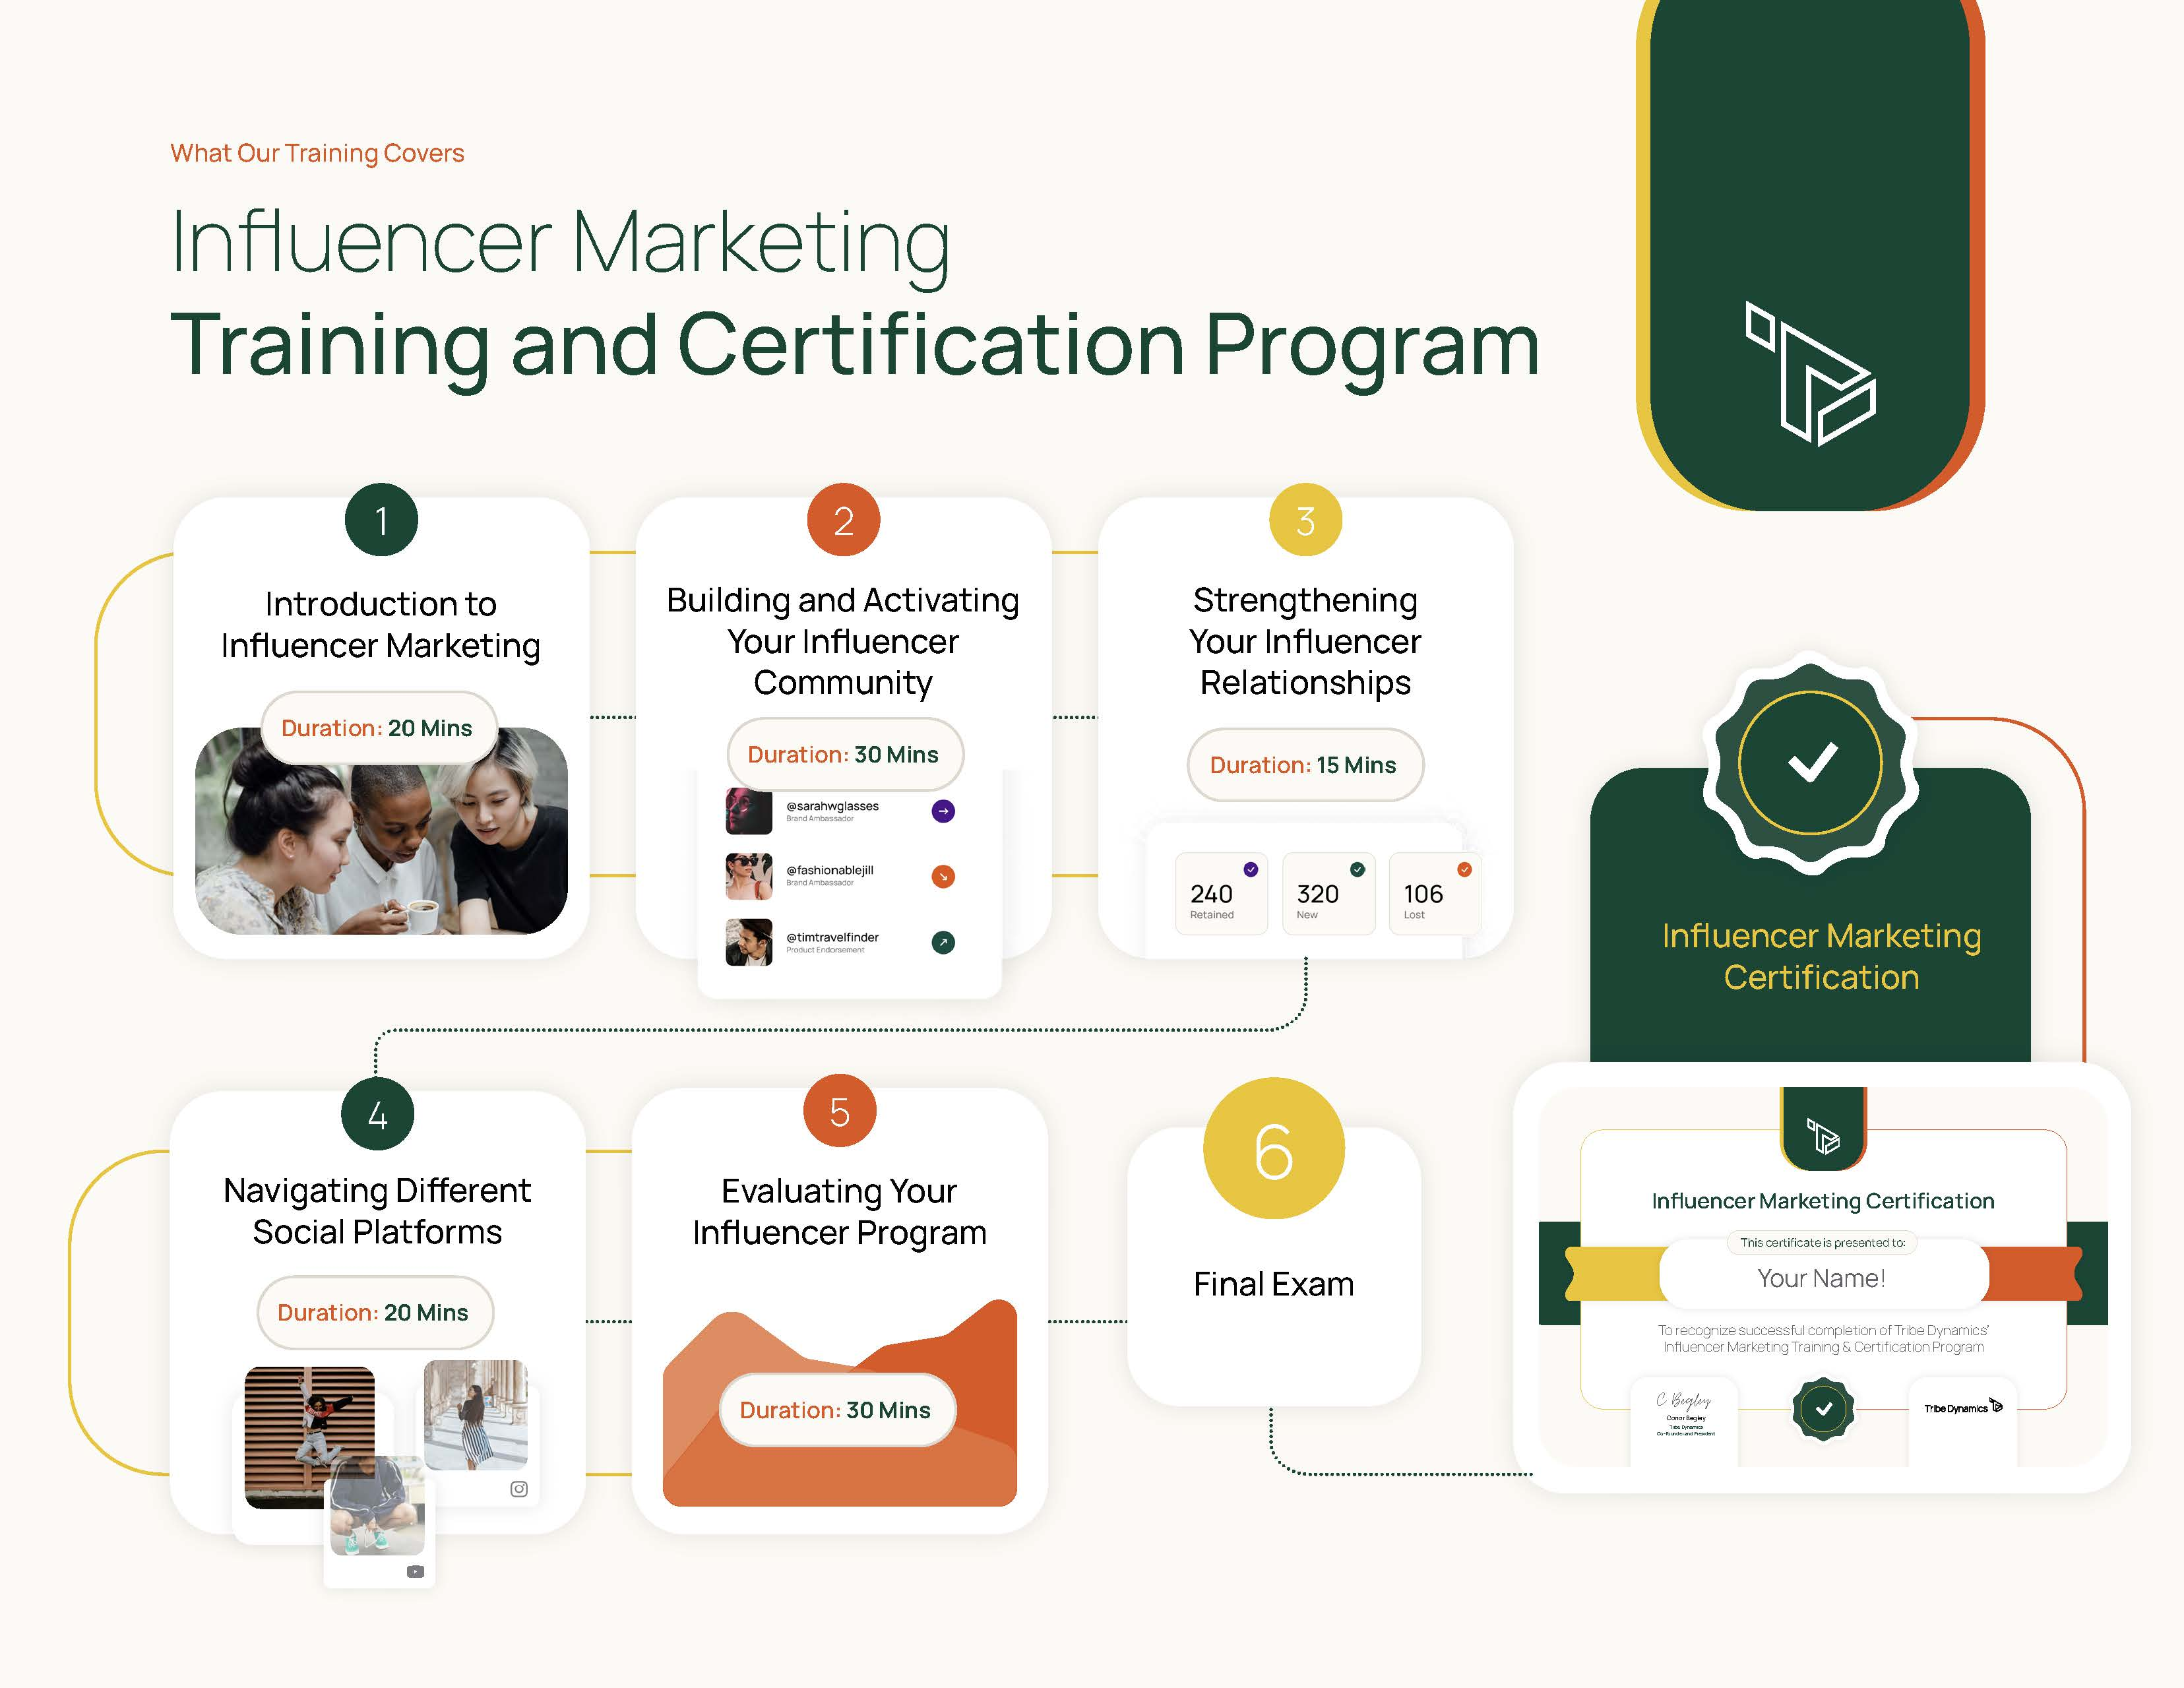 A graphic showing the process for earning an Influencer Marketing Certification.